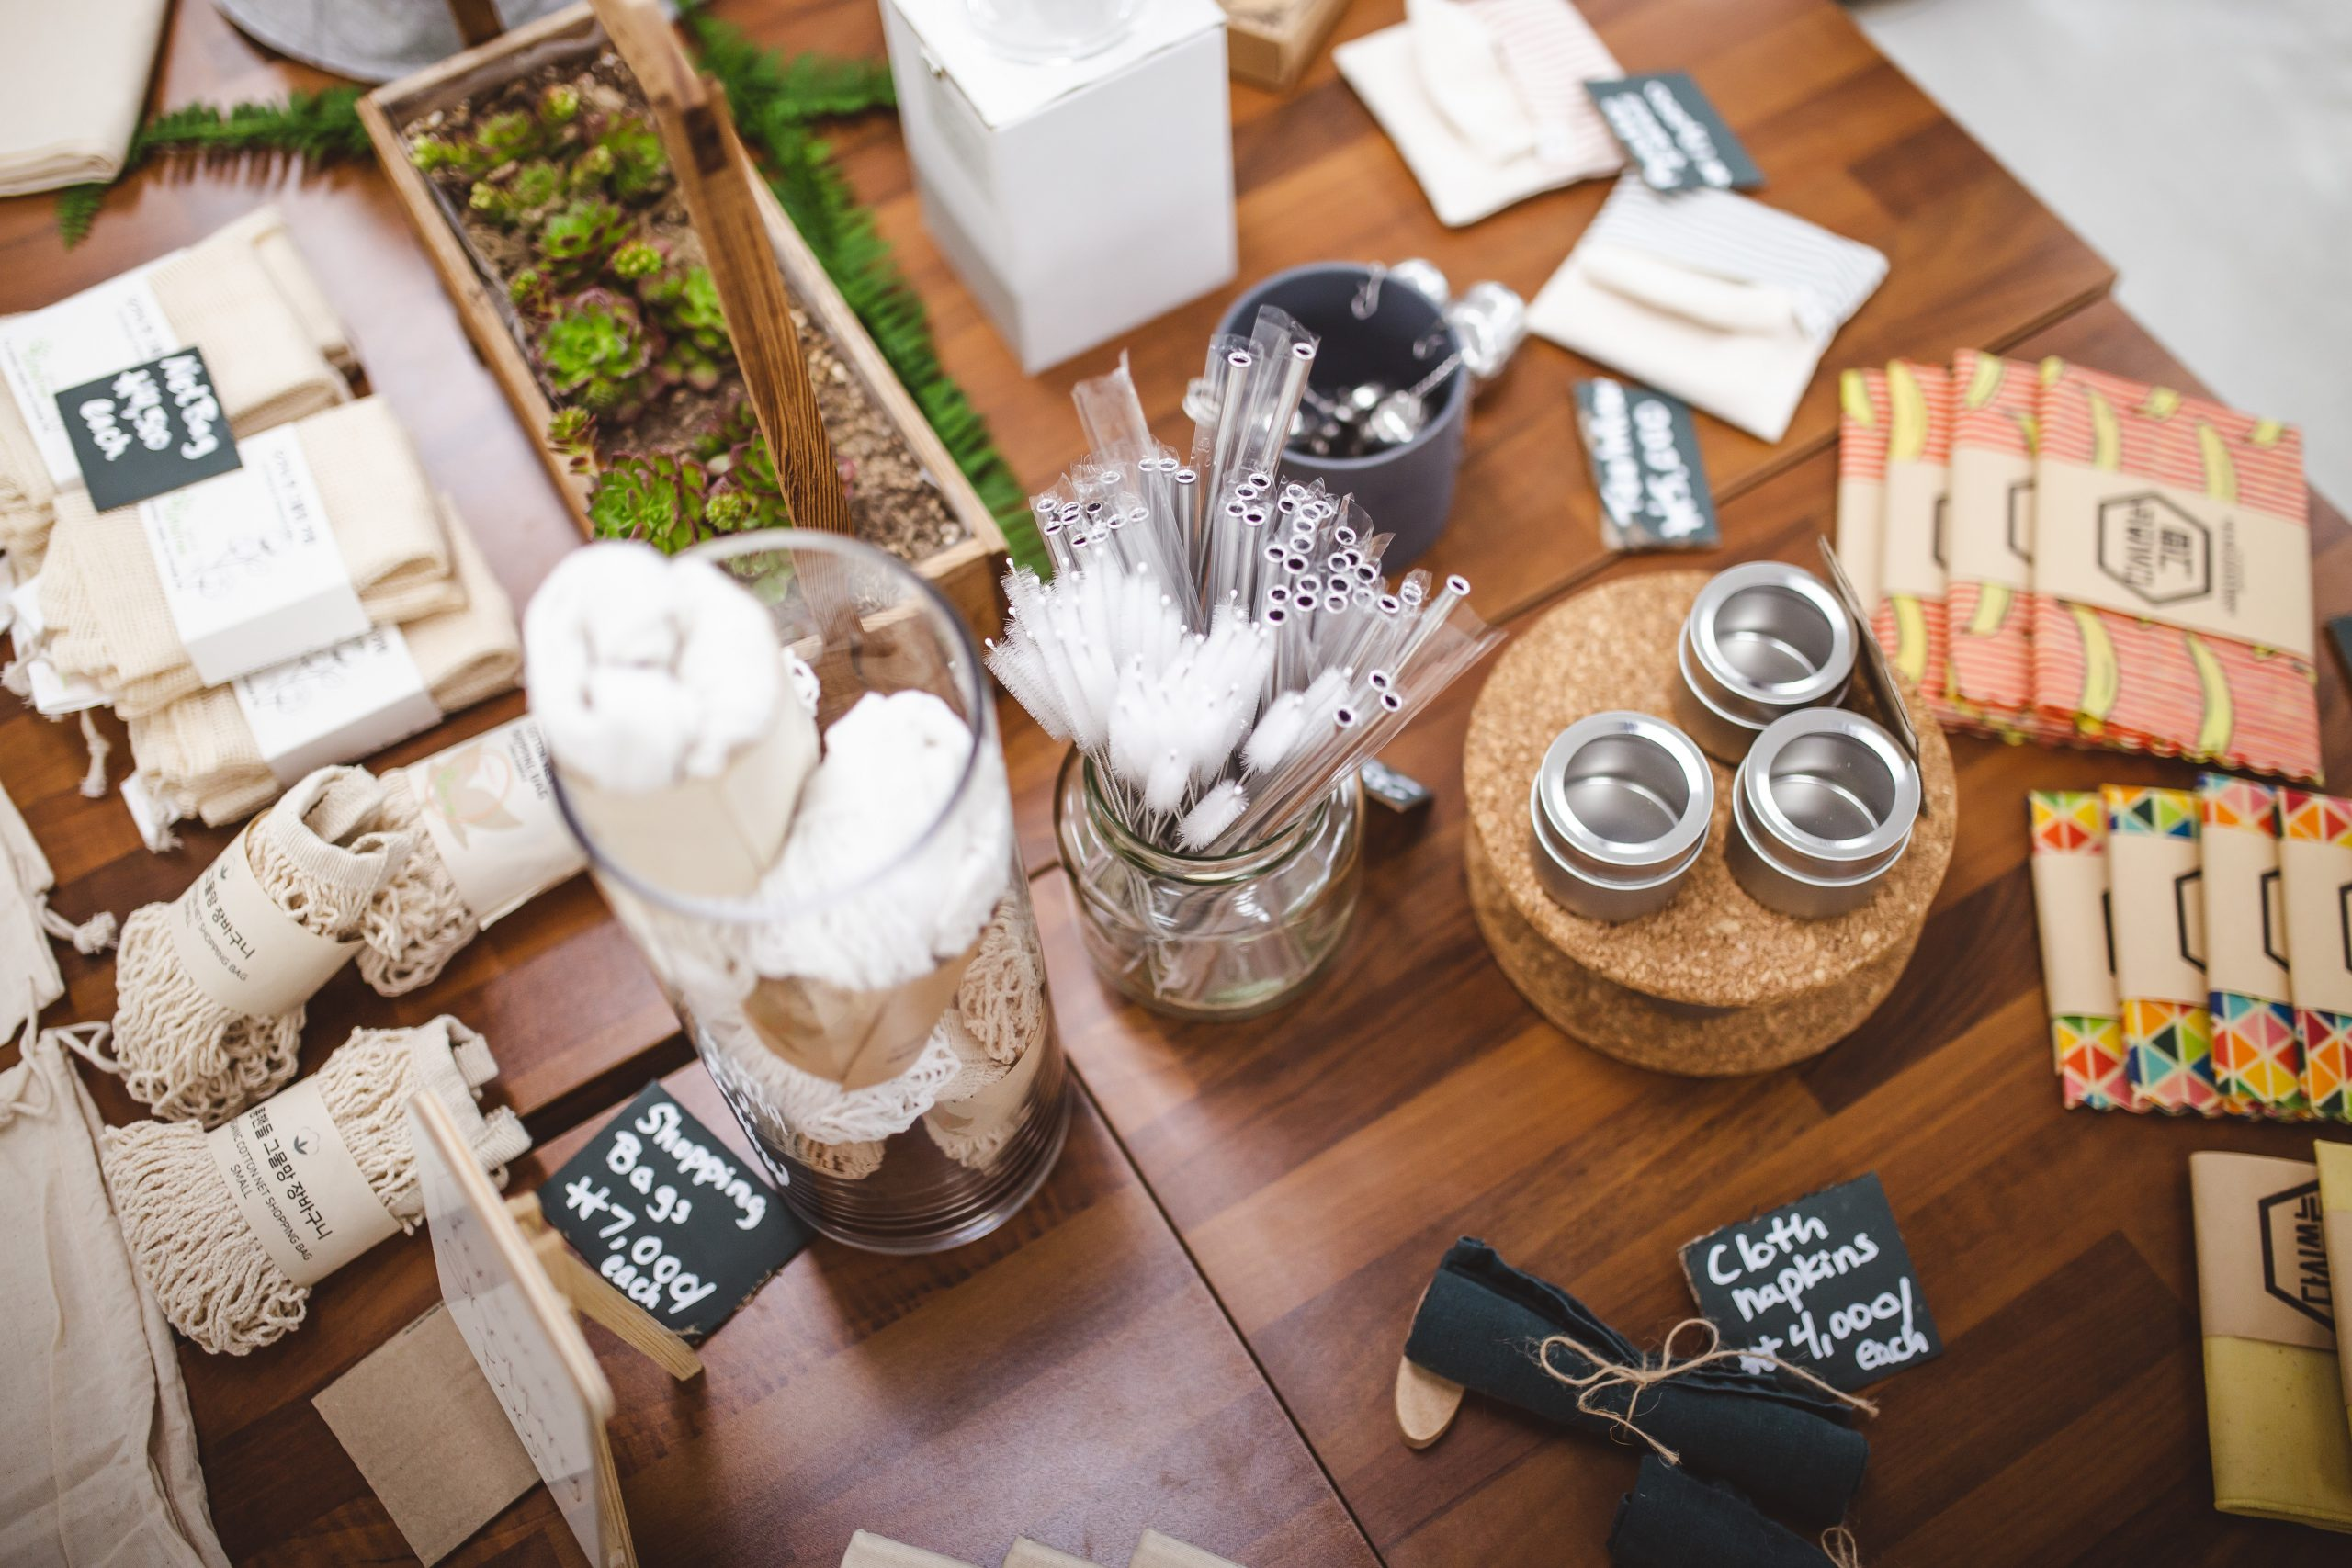 Online Zero Waste Stores Outside the US